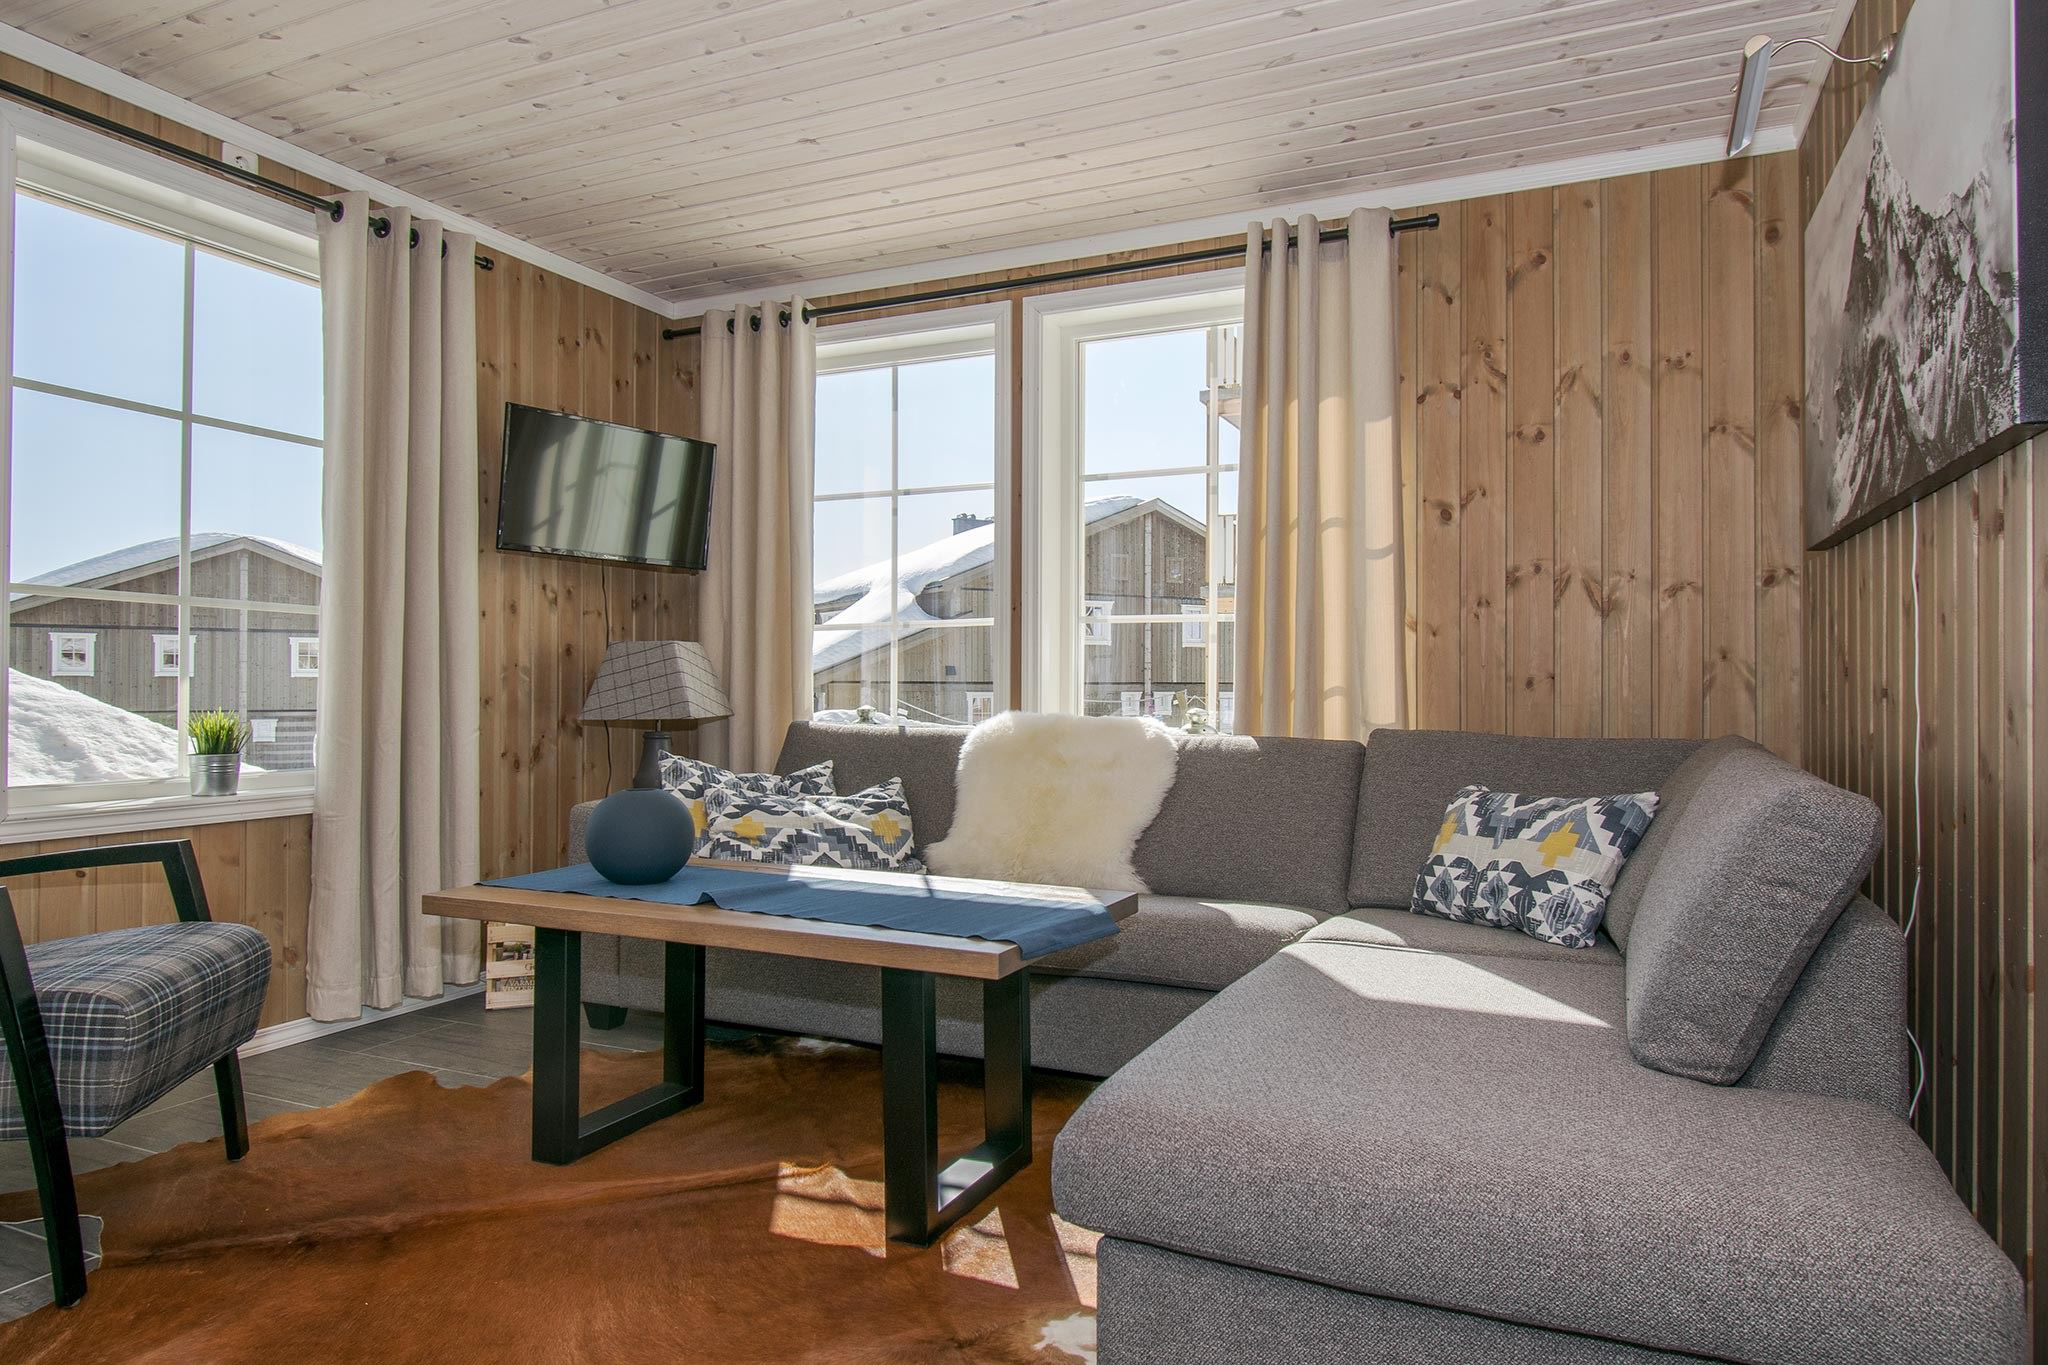 TOP TRYSIL APARTMENTS TTO1001F1